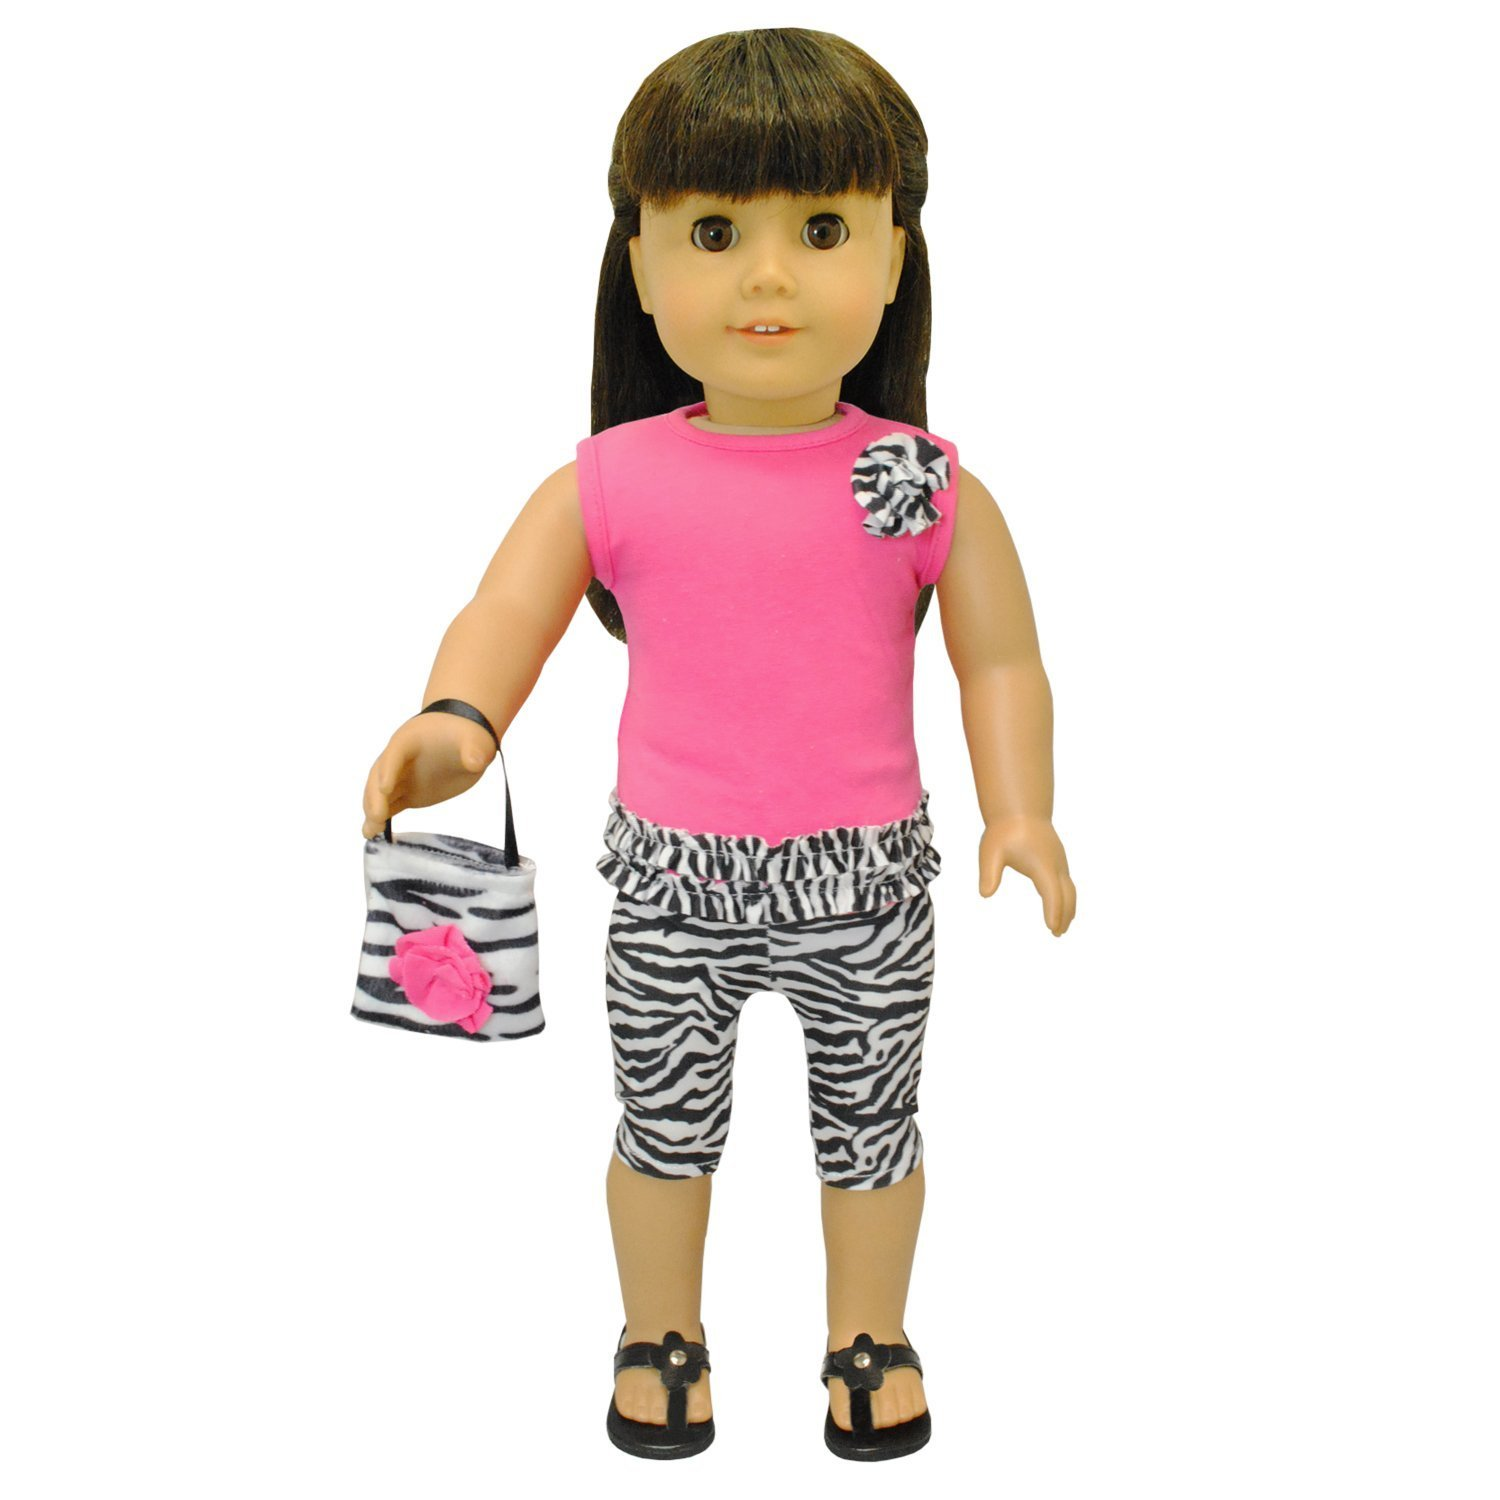 Doll Clothes - Zebra Print Outfit Set Purse Pink Fits American Girl Doll, My Life Doll, Our Generation and other 18 inch Dolls by Pink Butterfly Closet